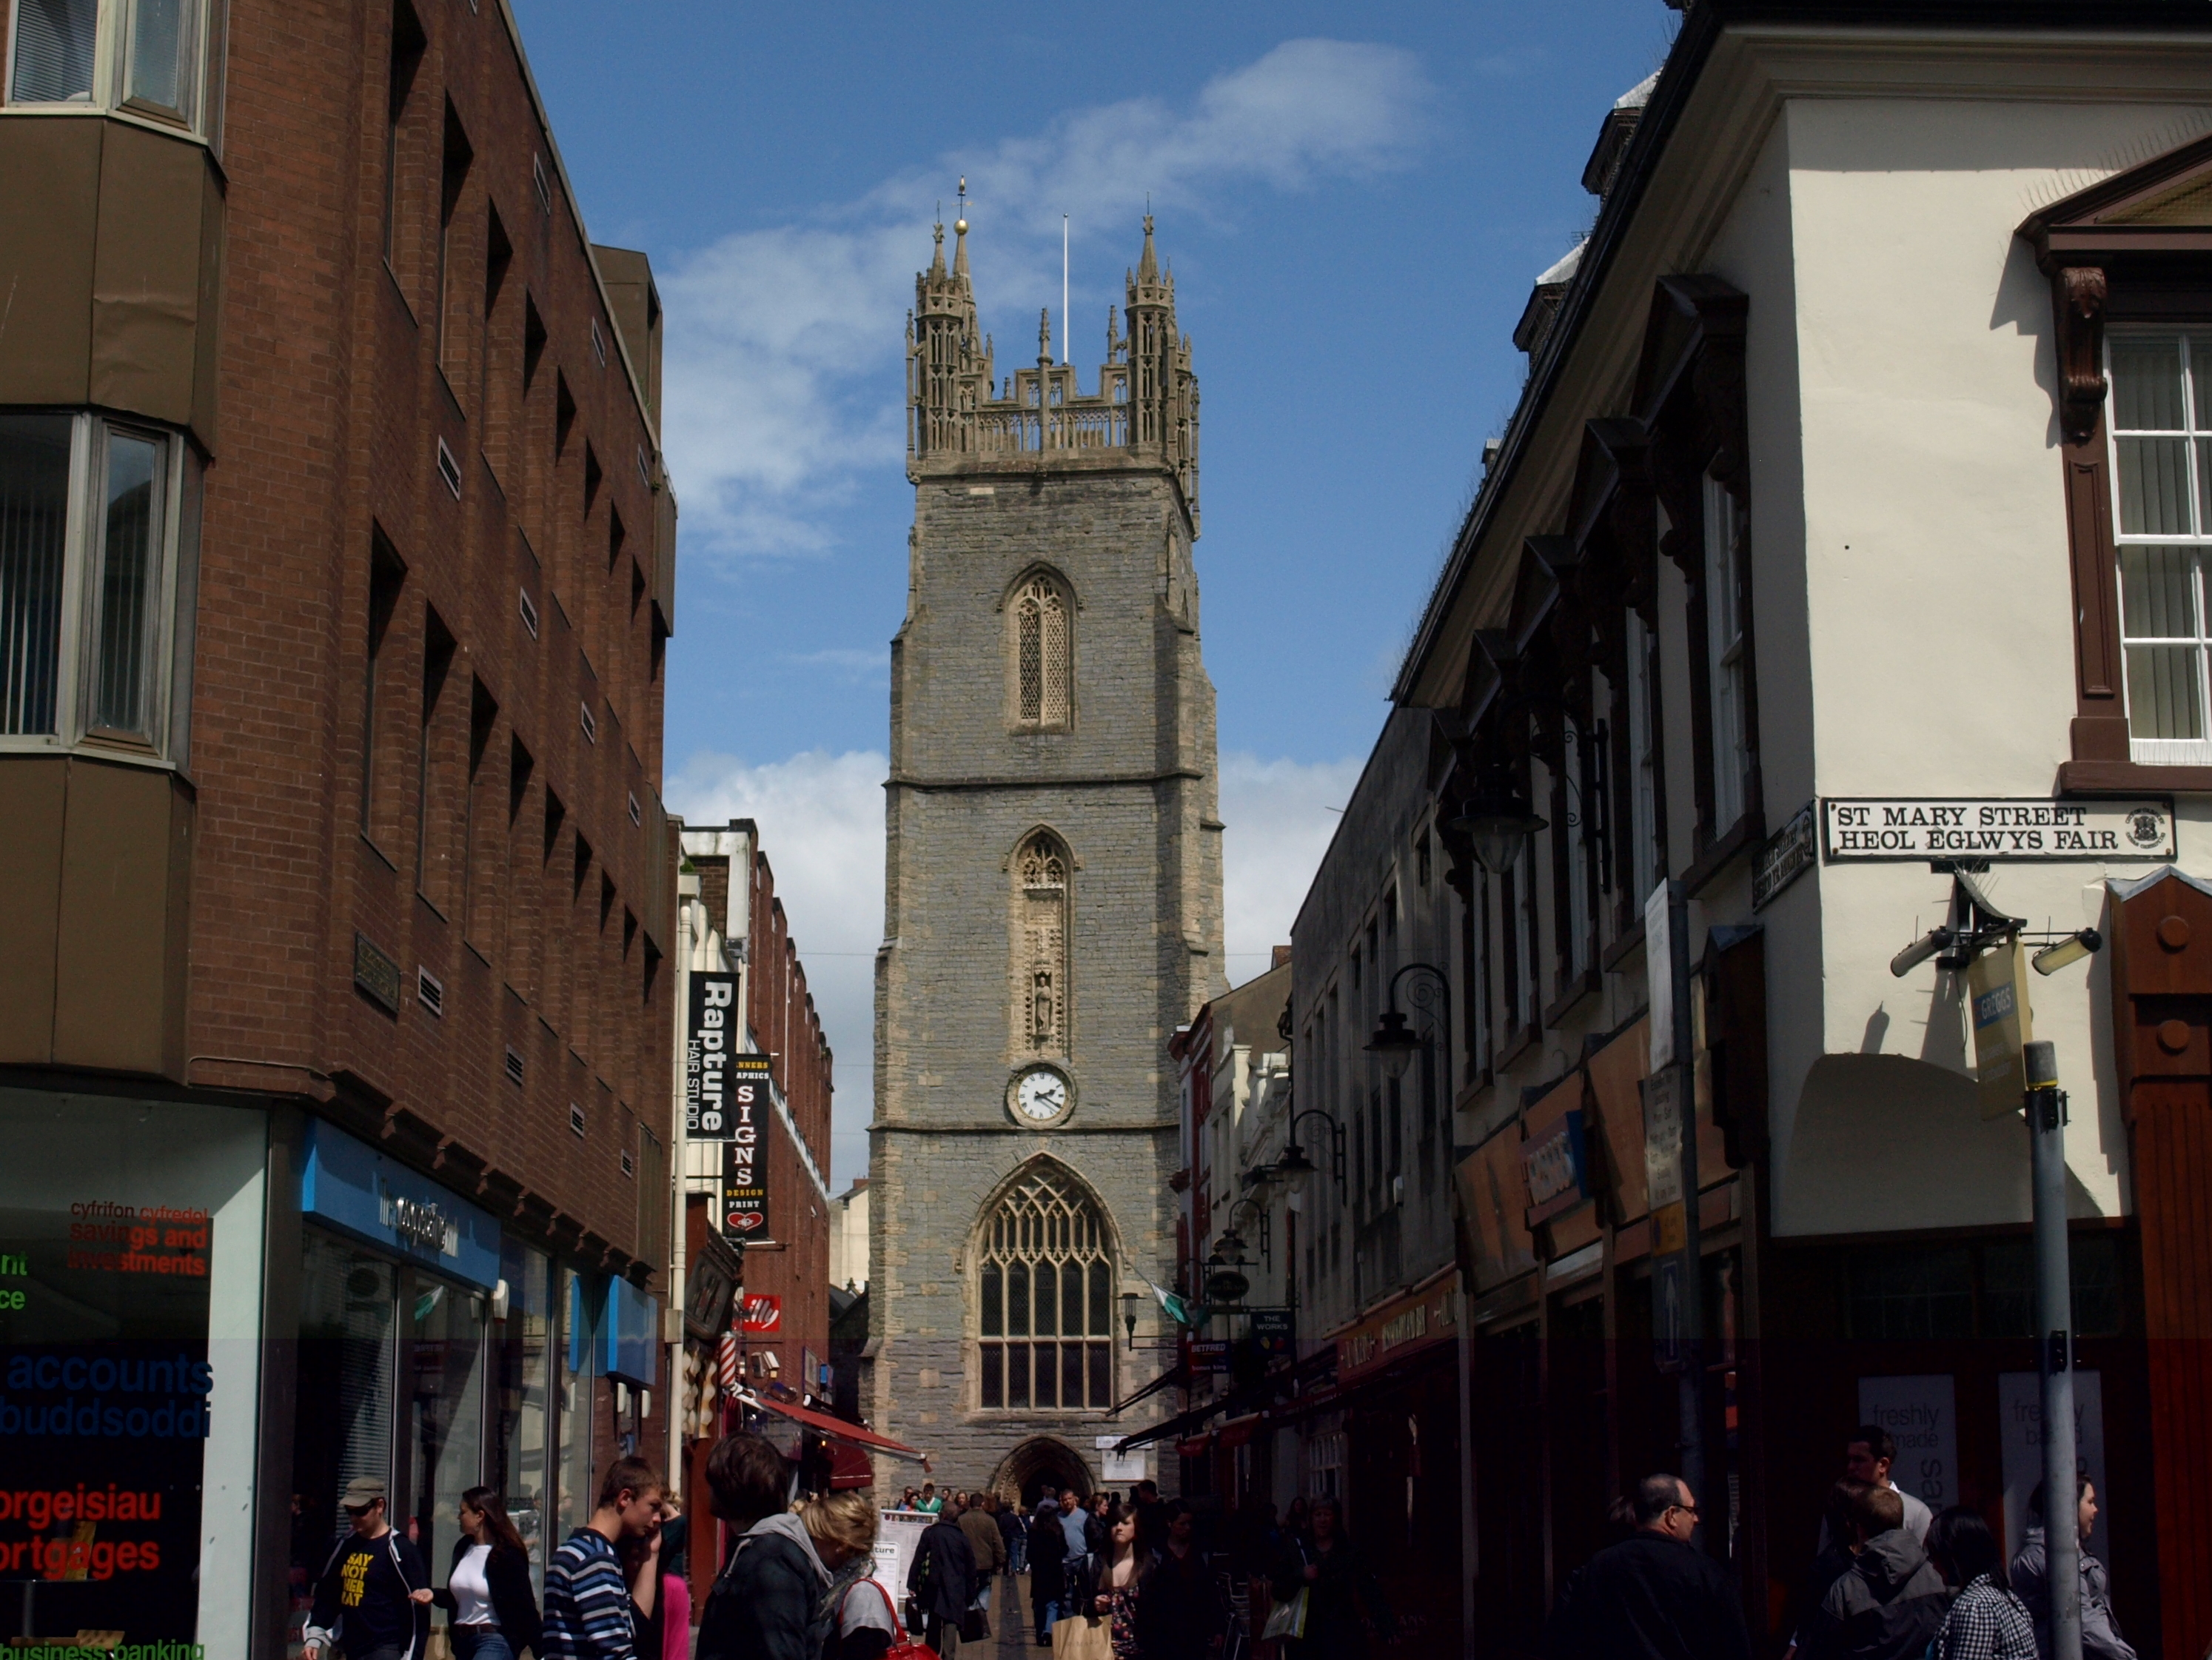 Tower of the Parish of St John the Baptist Seen Along St. Mary Street